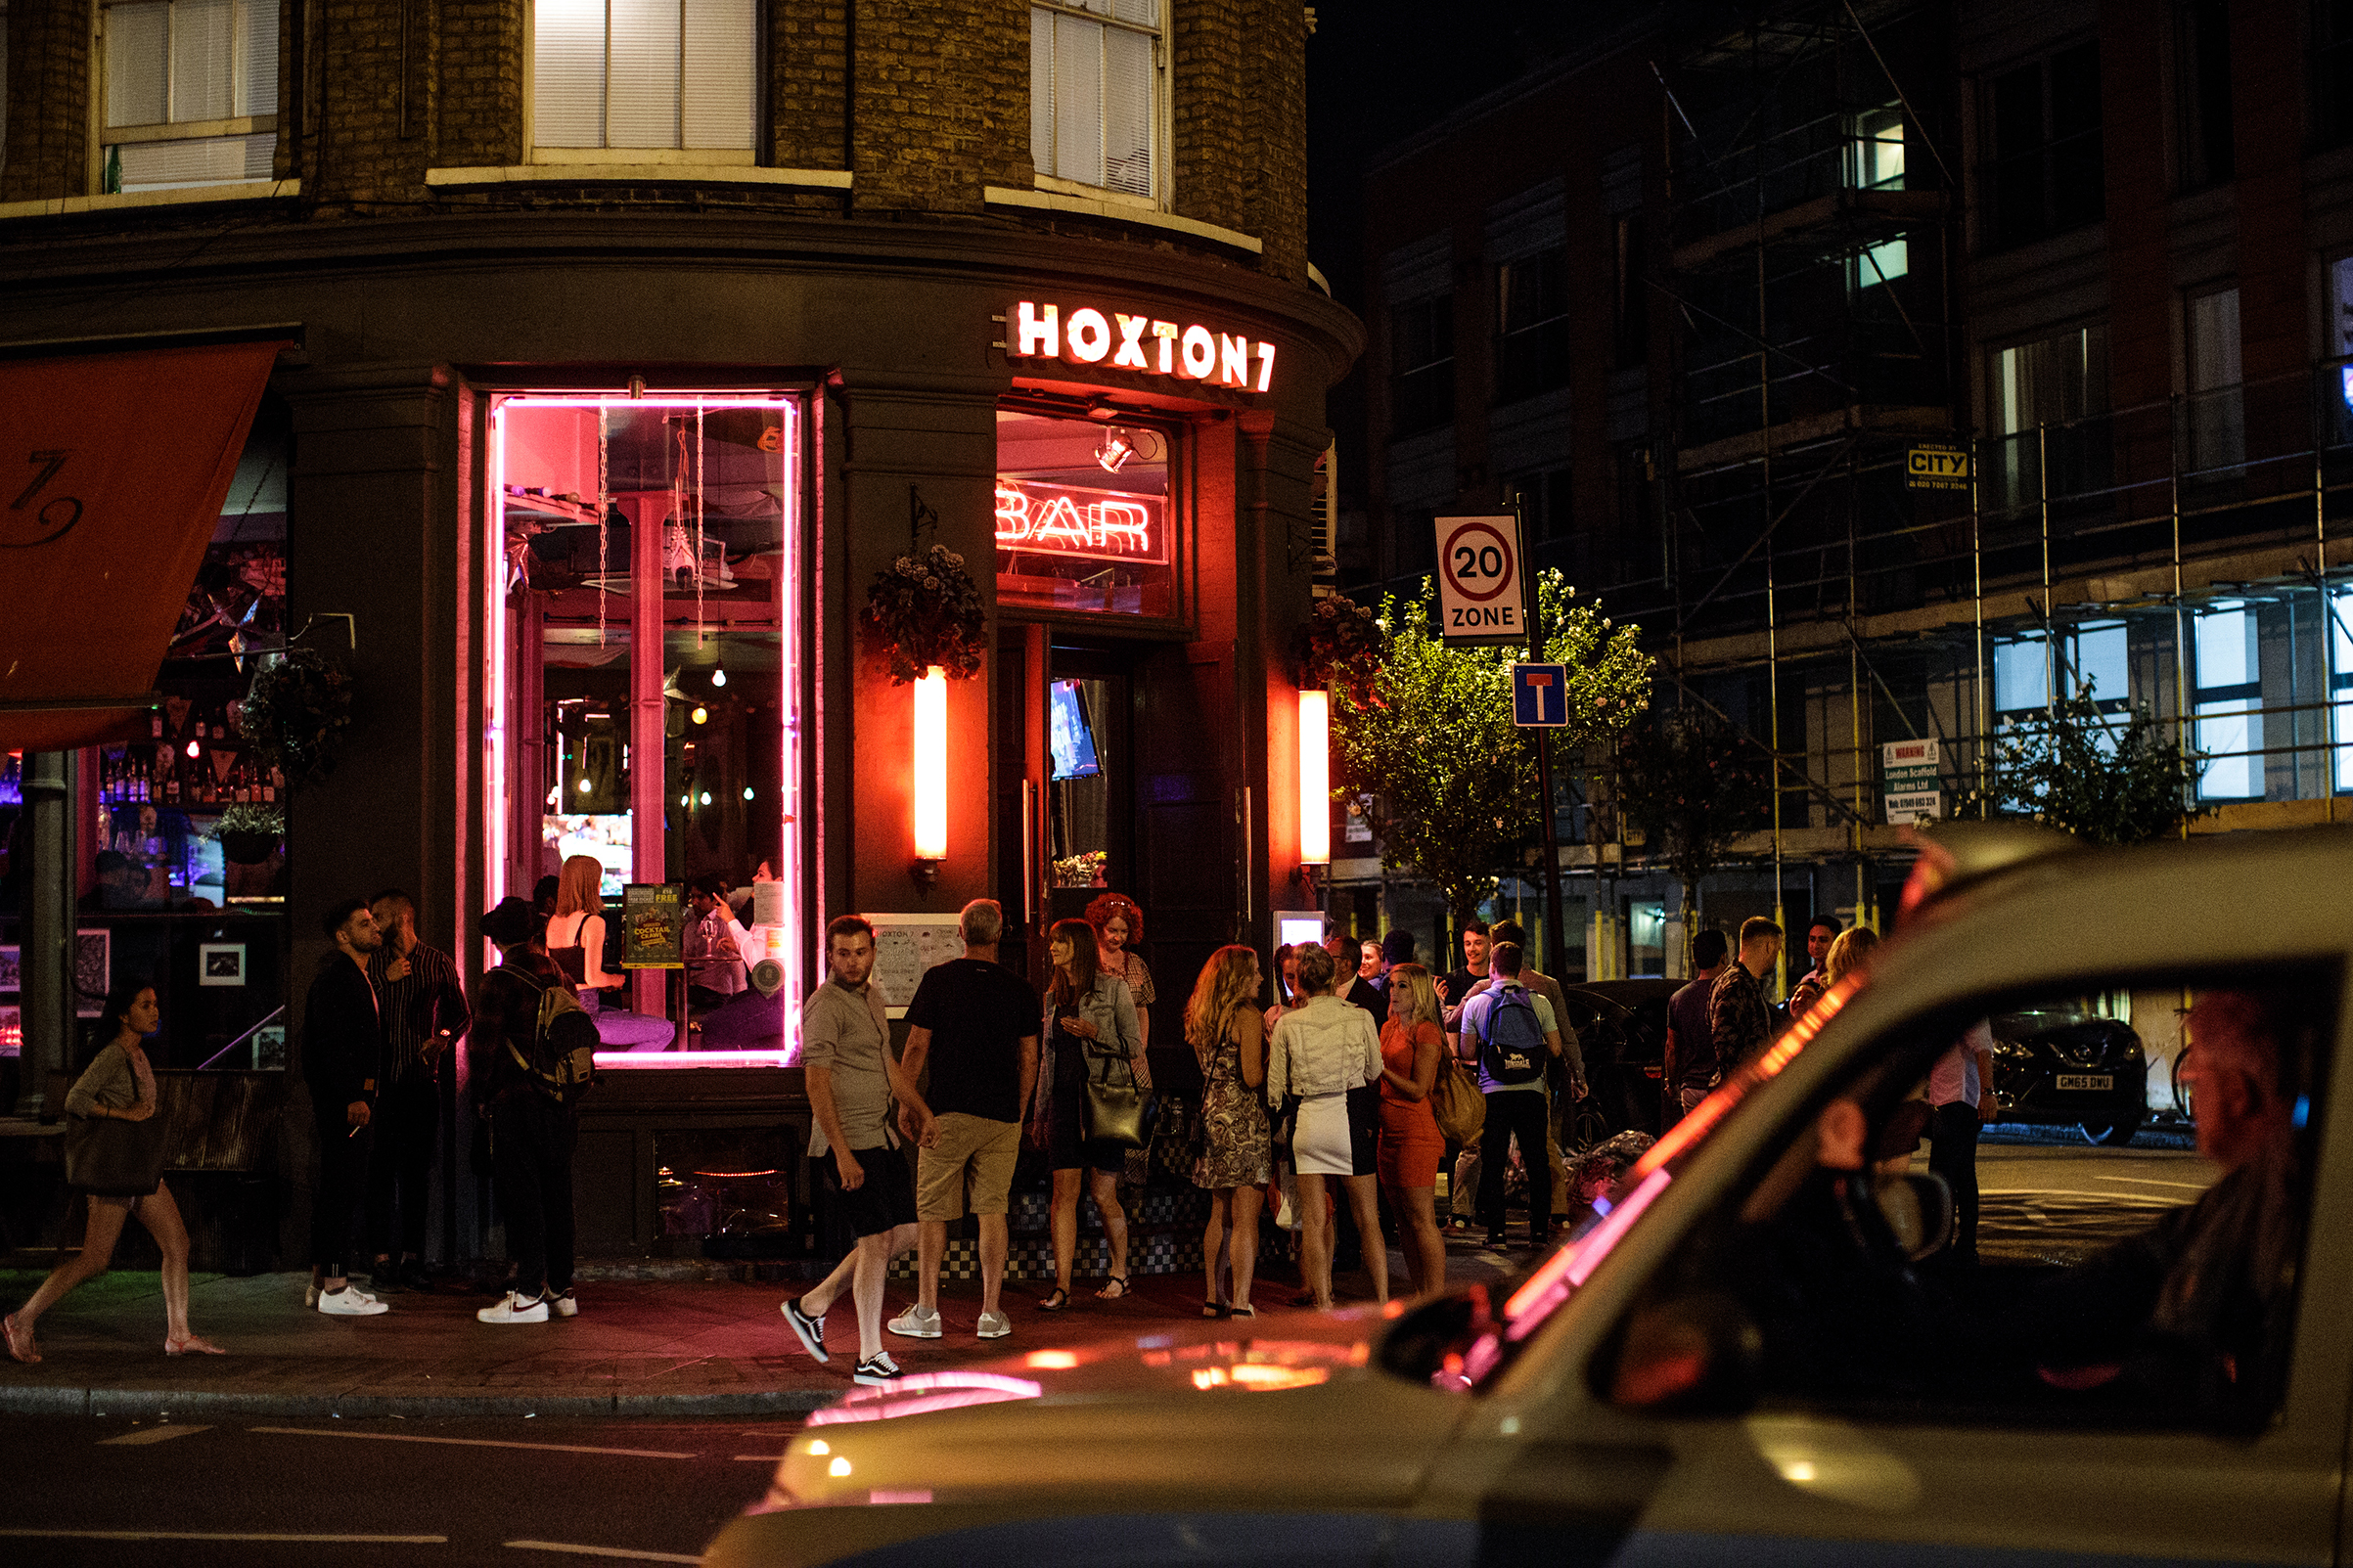 People gather outside a bar in Shoreditch, on July 28, 2018 in London, England.